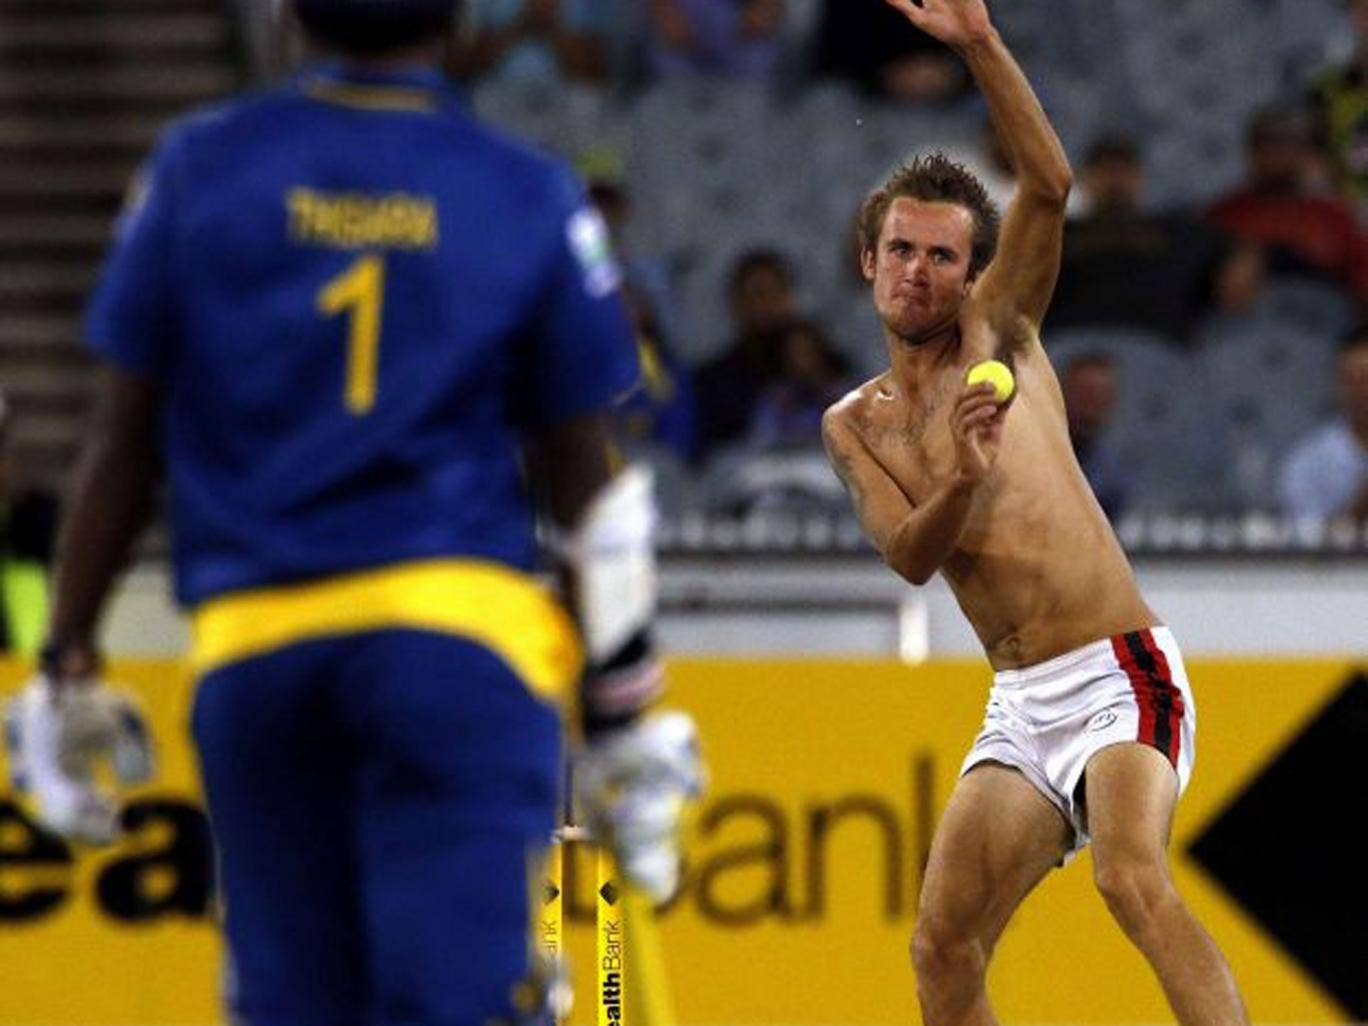 An underdressed spectator fancies a bowl in Melbourne